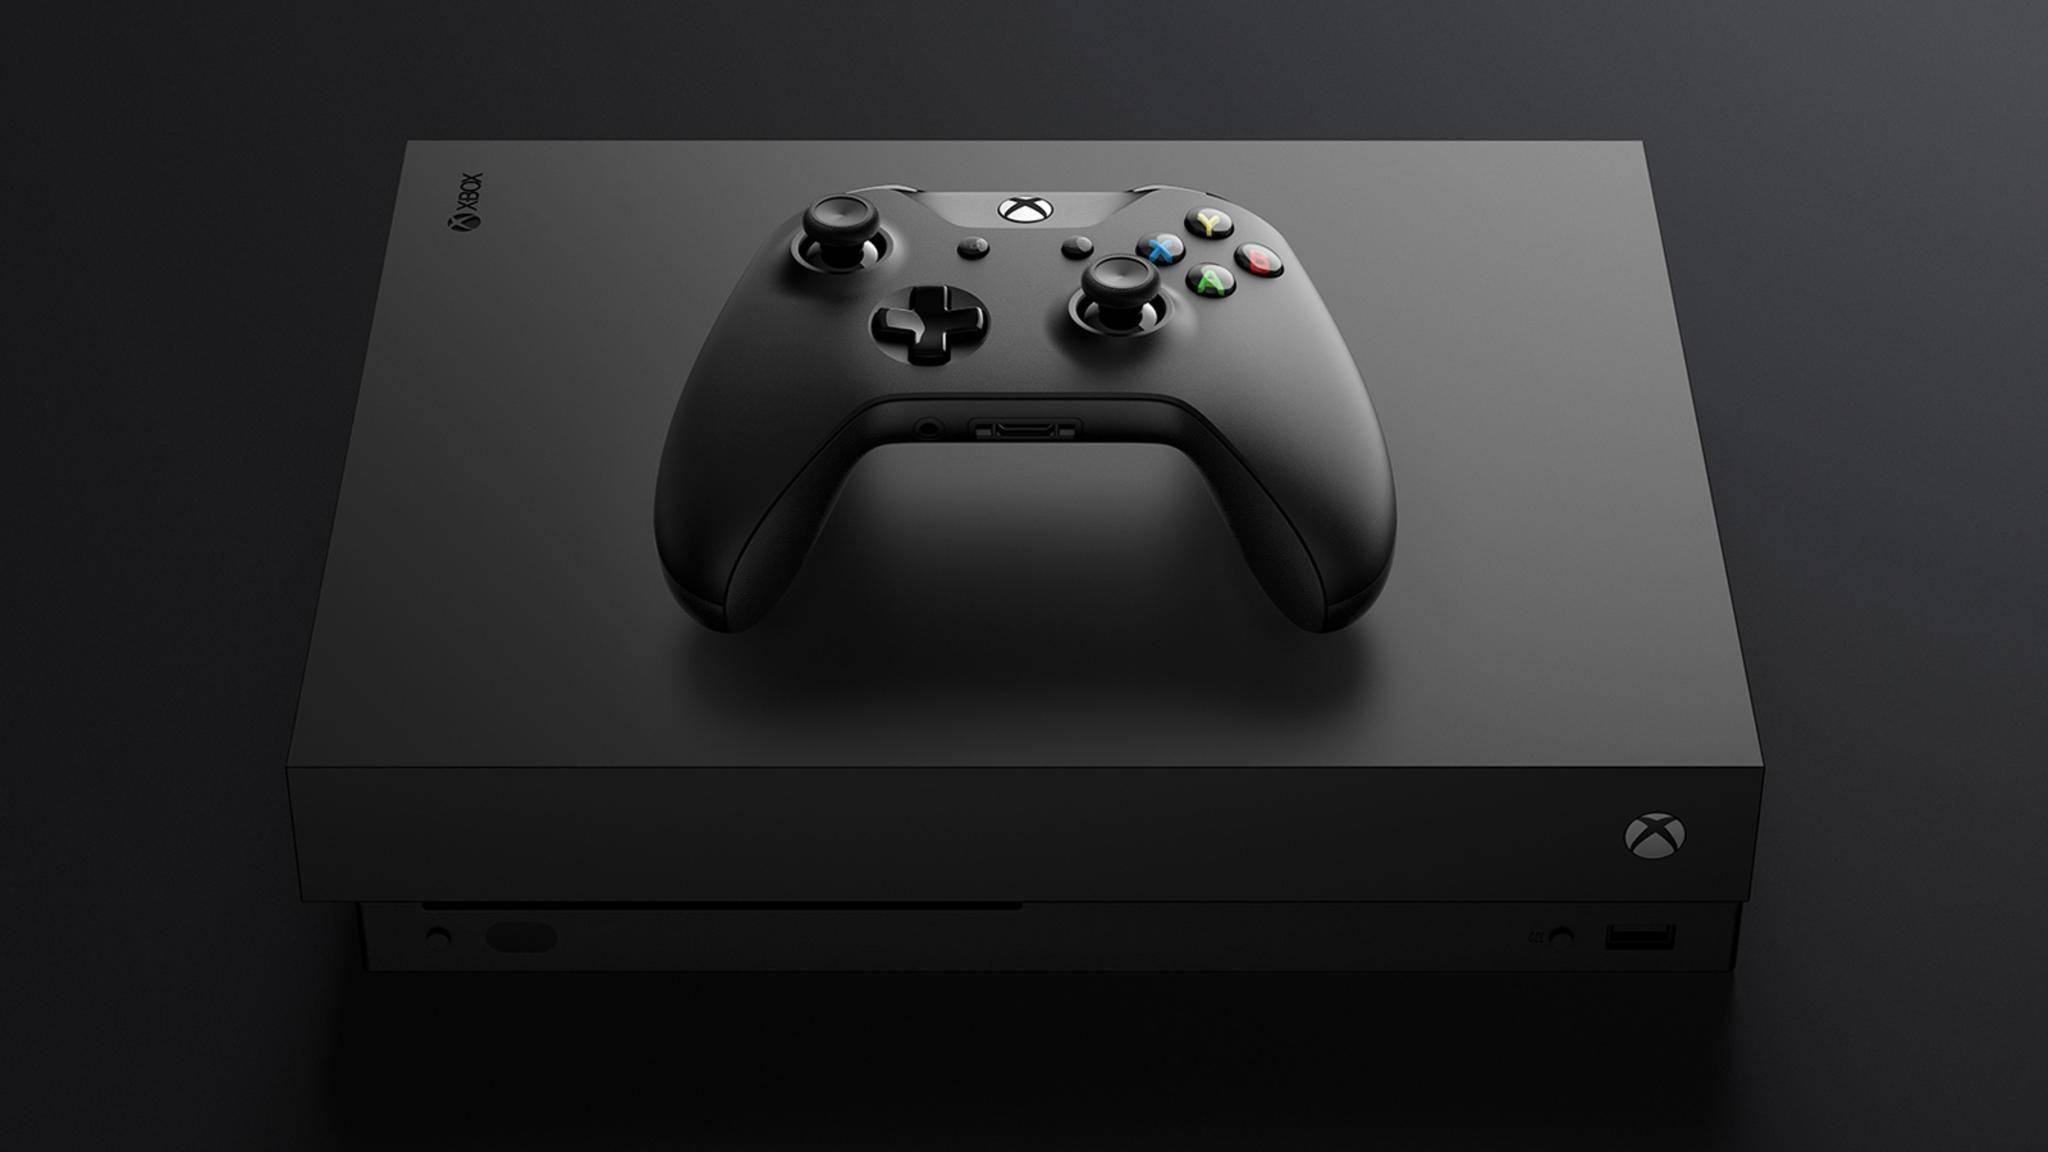 Xbox One X mit Controller